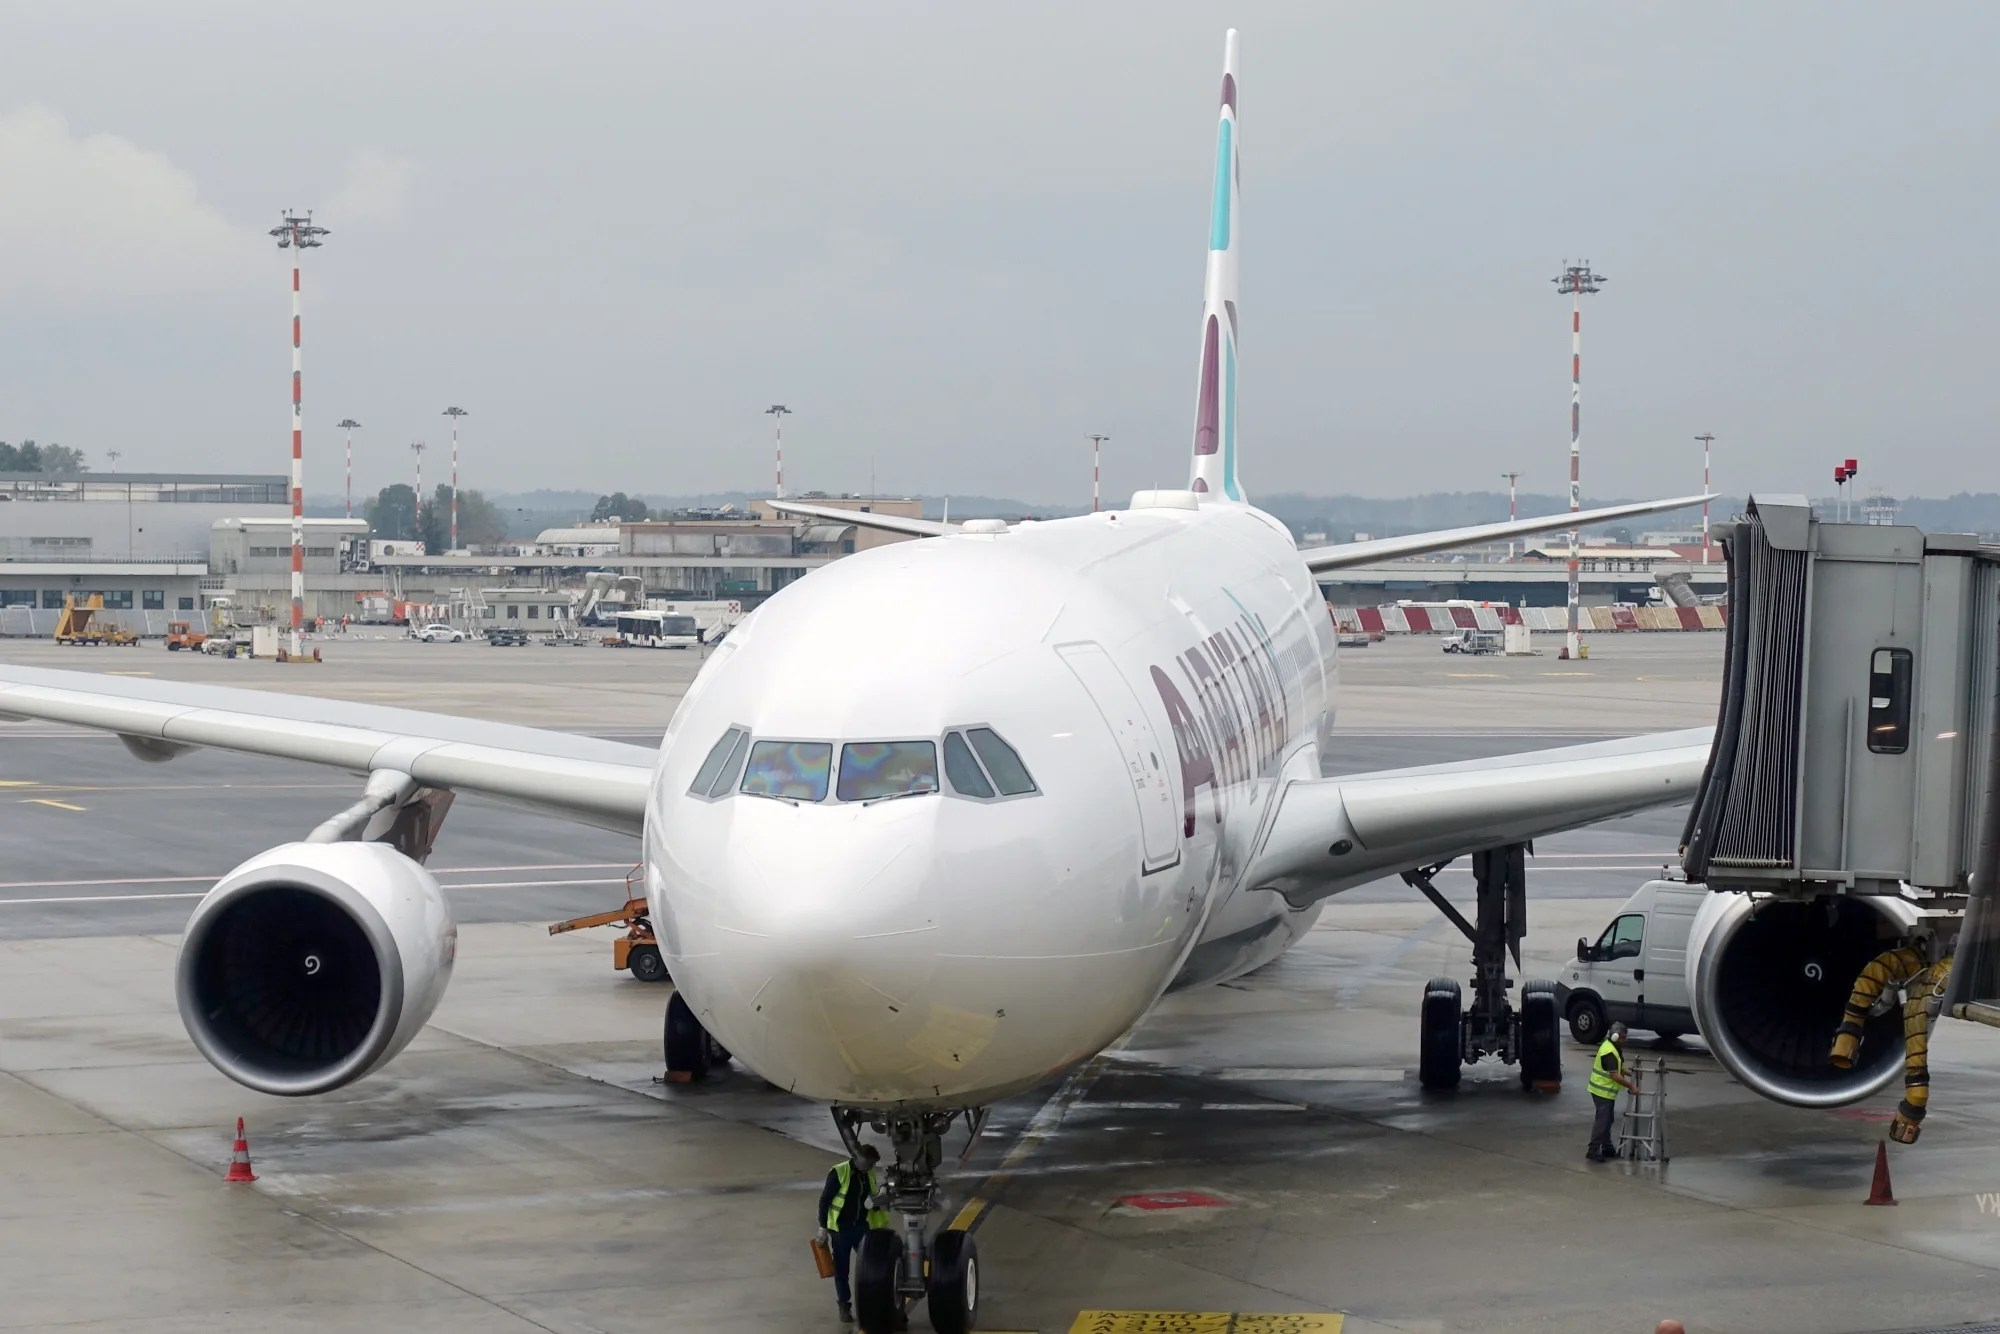 Air Italy Launching Service to Los Angeles and San Francisco